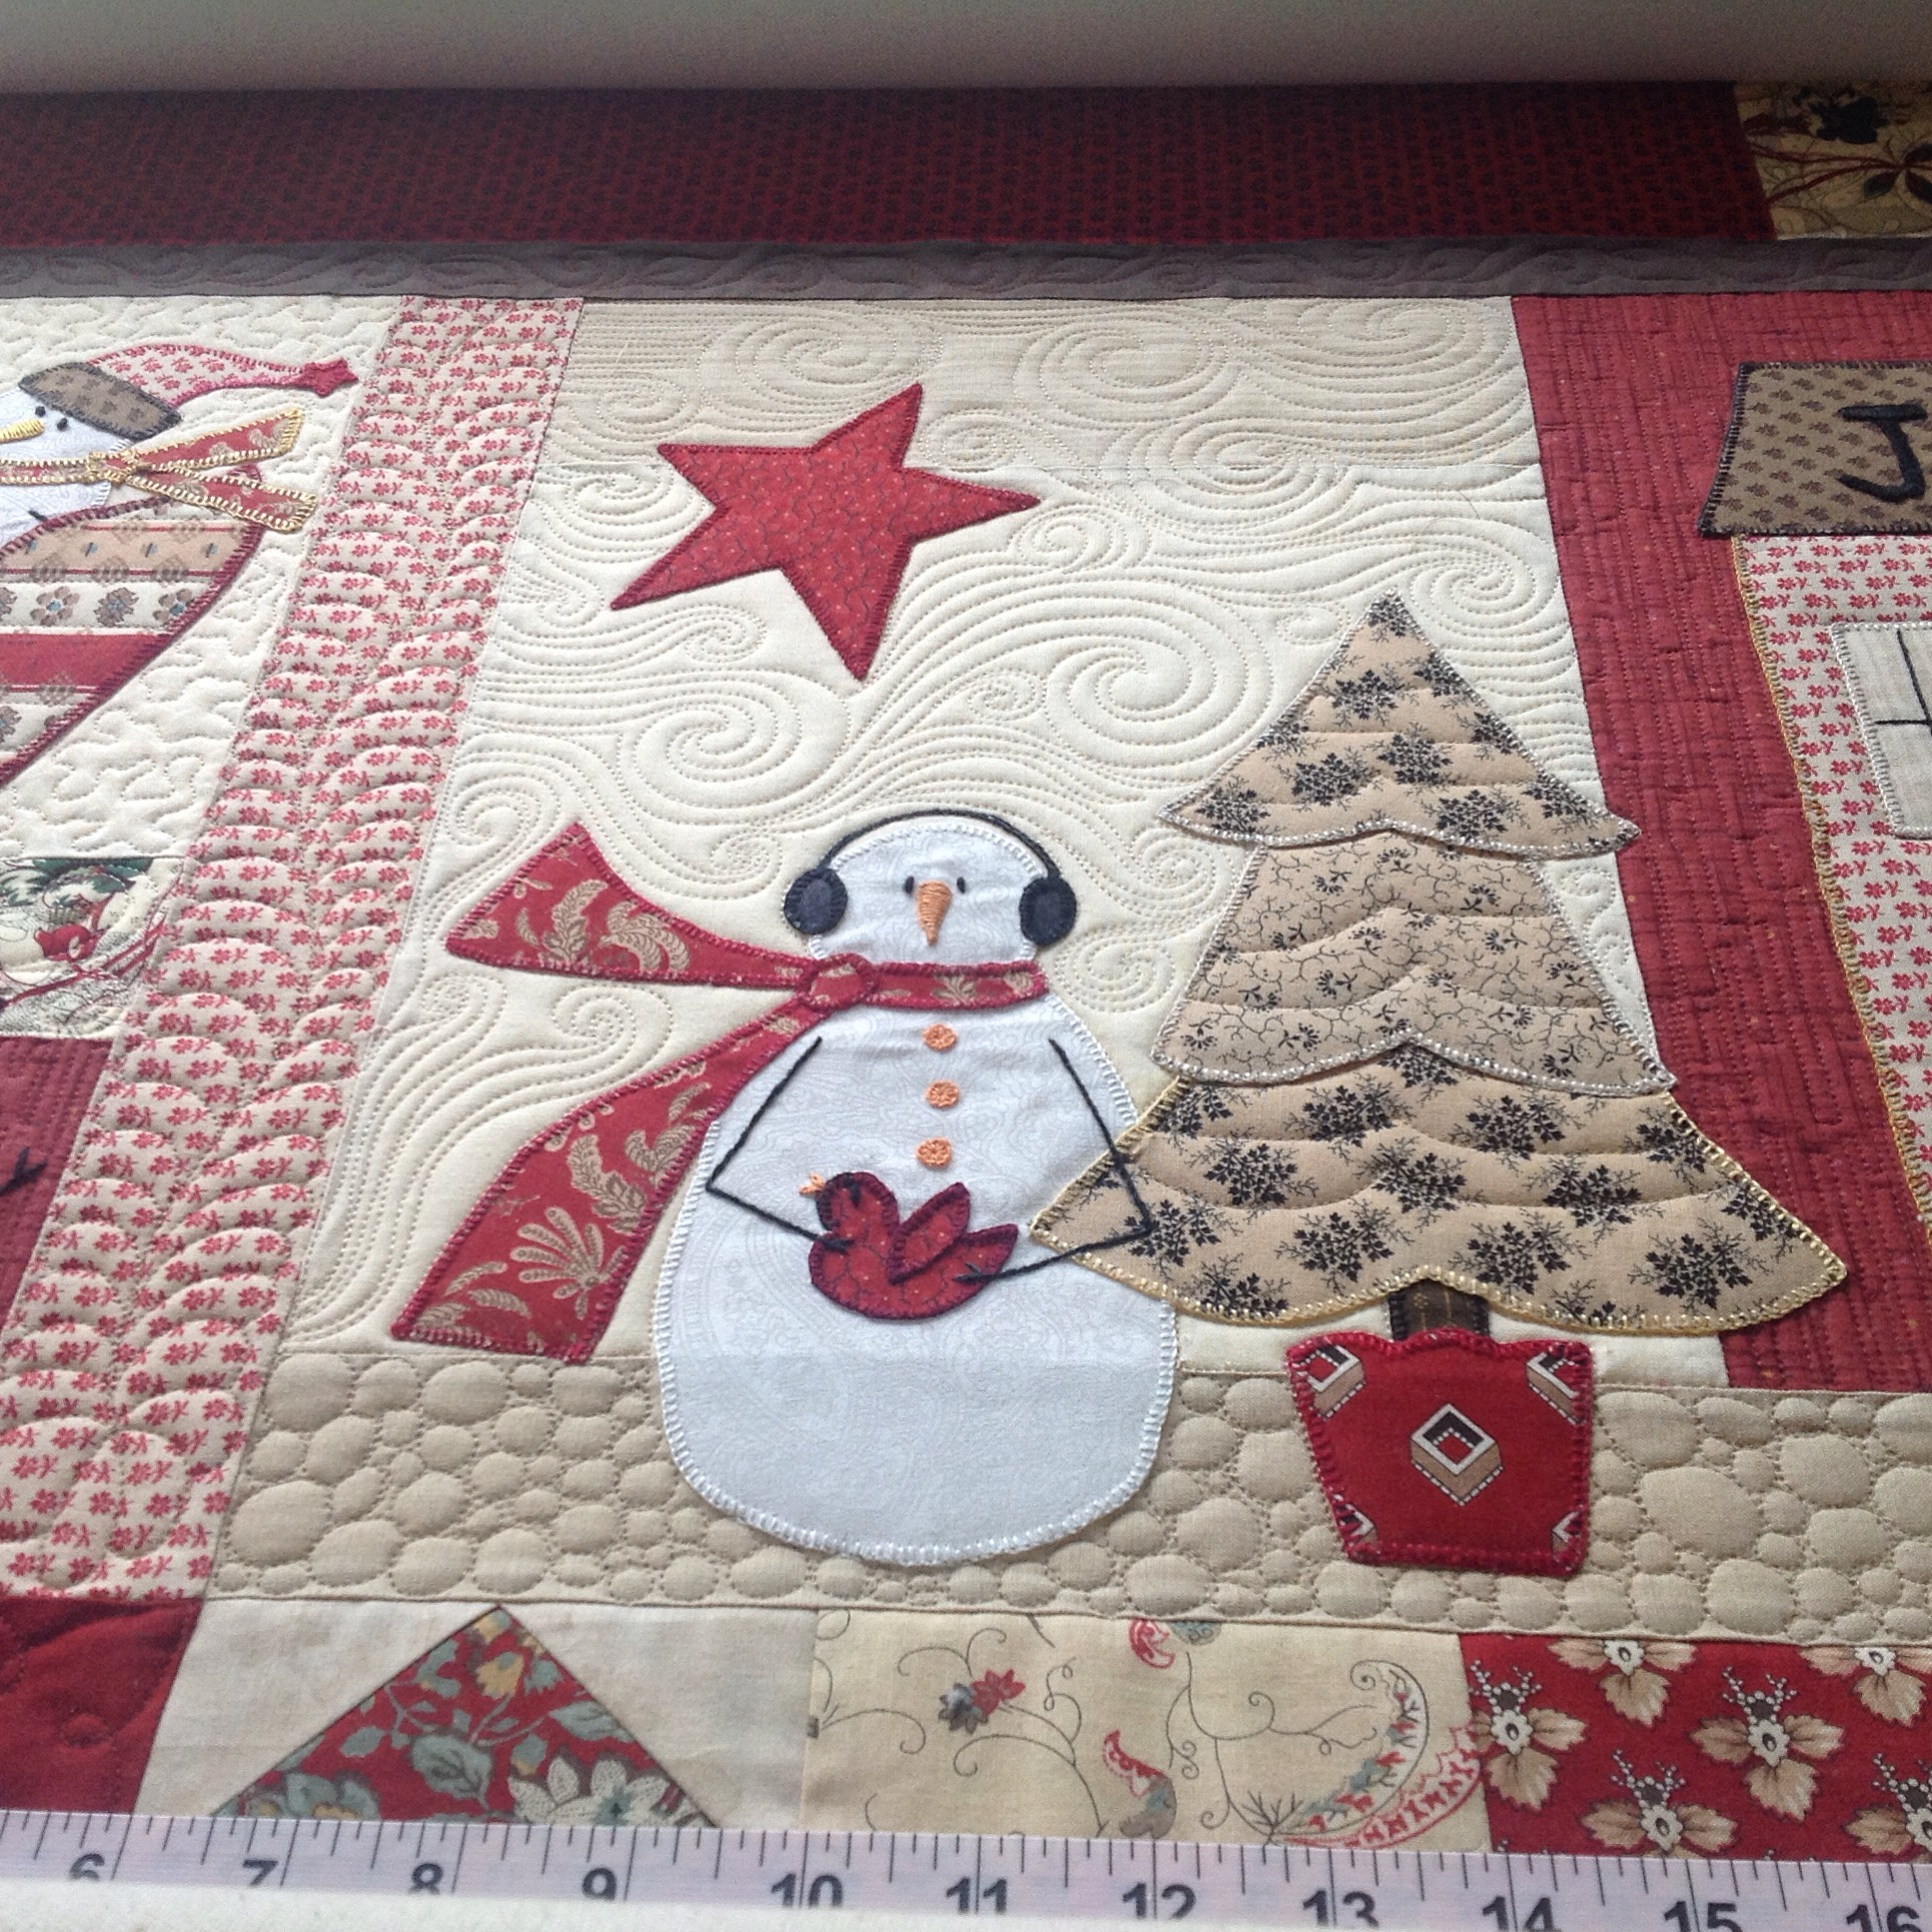 Alvena S Applique Christmas Quilt Free Bird Quilting Designs